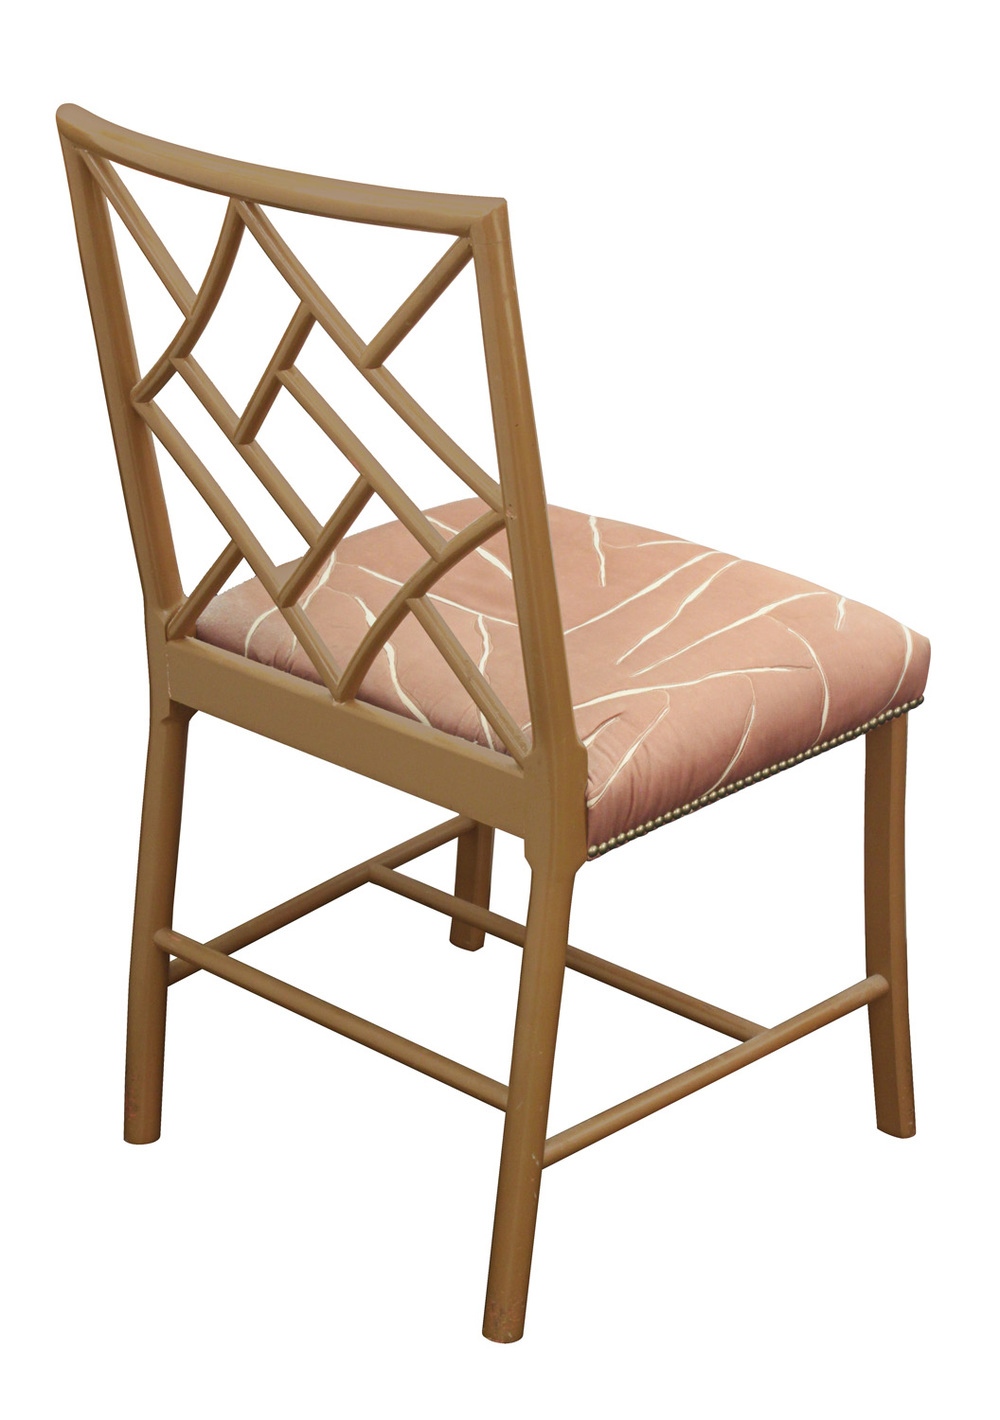 70s 180 Haines mnnr set8 brown lqr diningchairs165 detail4 hires.jpg